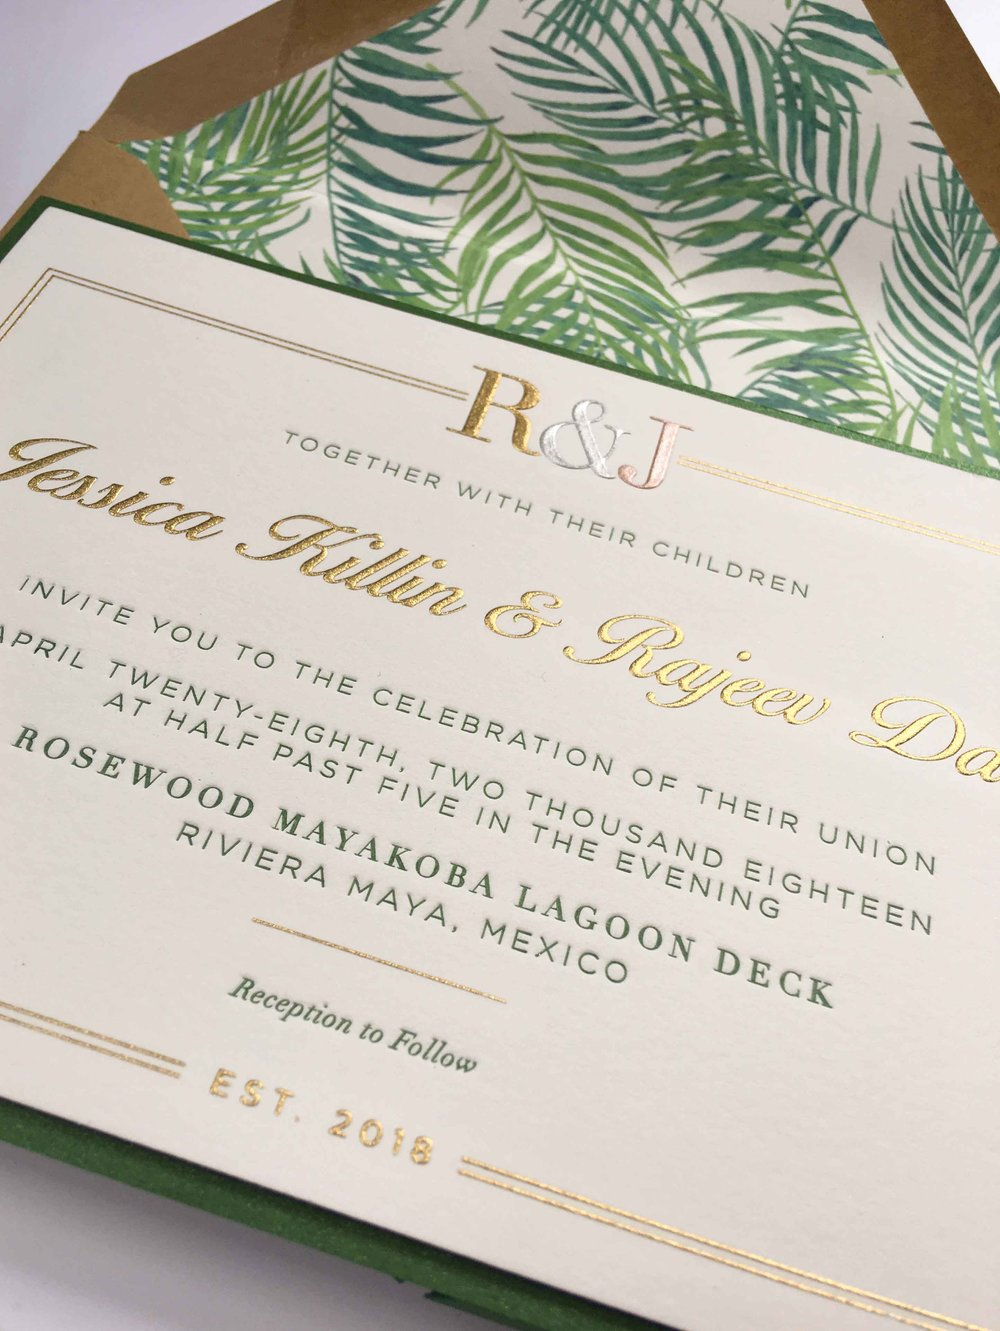 Type-A-Invitations-Letterpress-Engraved-Custom-Wedding-Invite-Jessica-Luxury-Resort-02-WEB.jpg